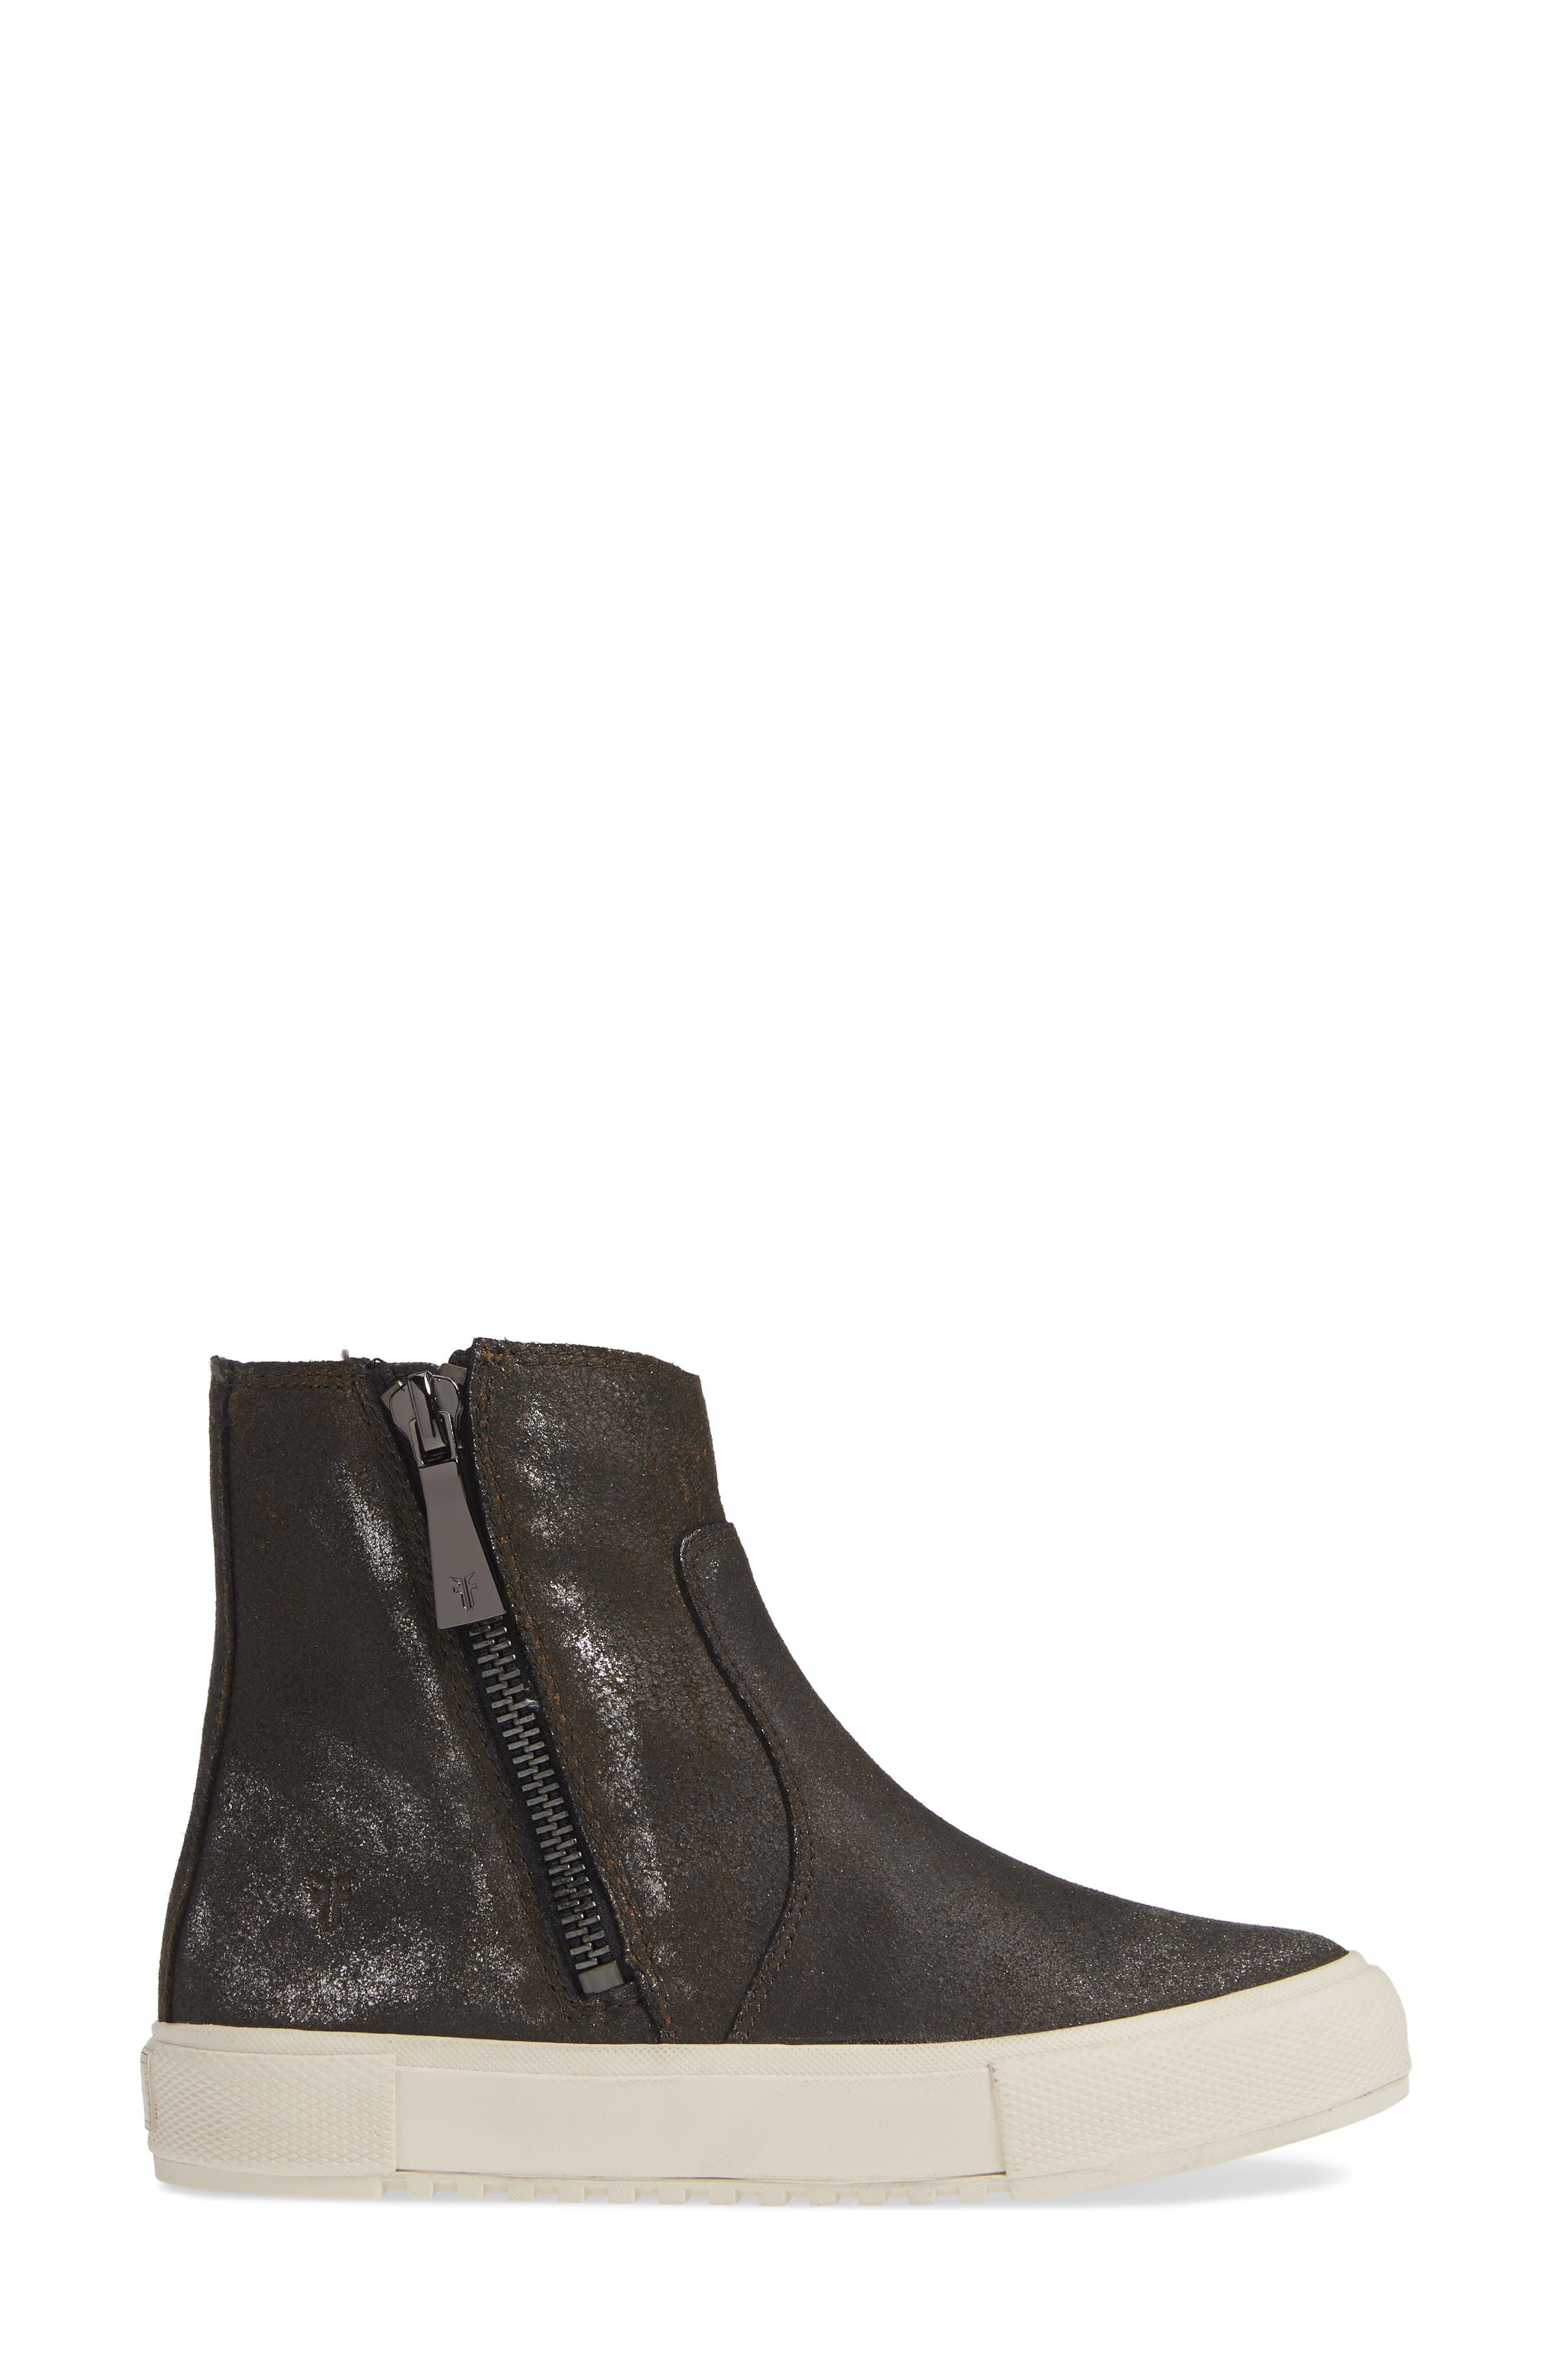 Gia Bootie,                             Alternate thumbnail 3, color,                             ANTHRACITE LEATHER